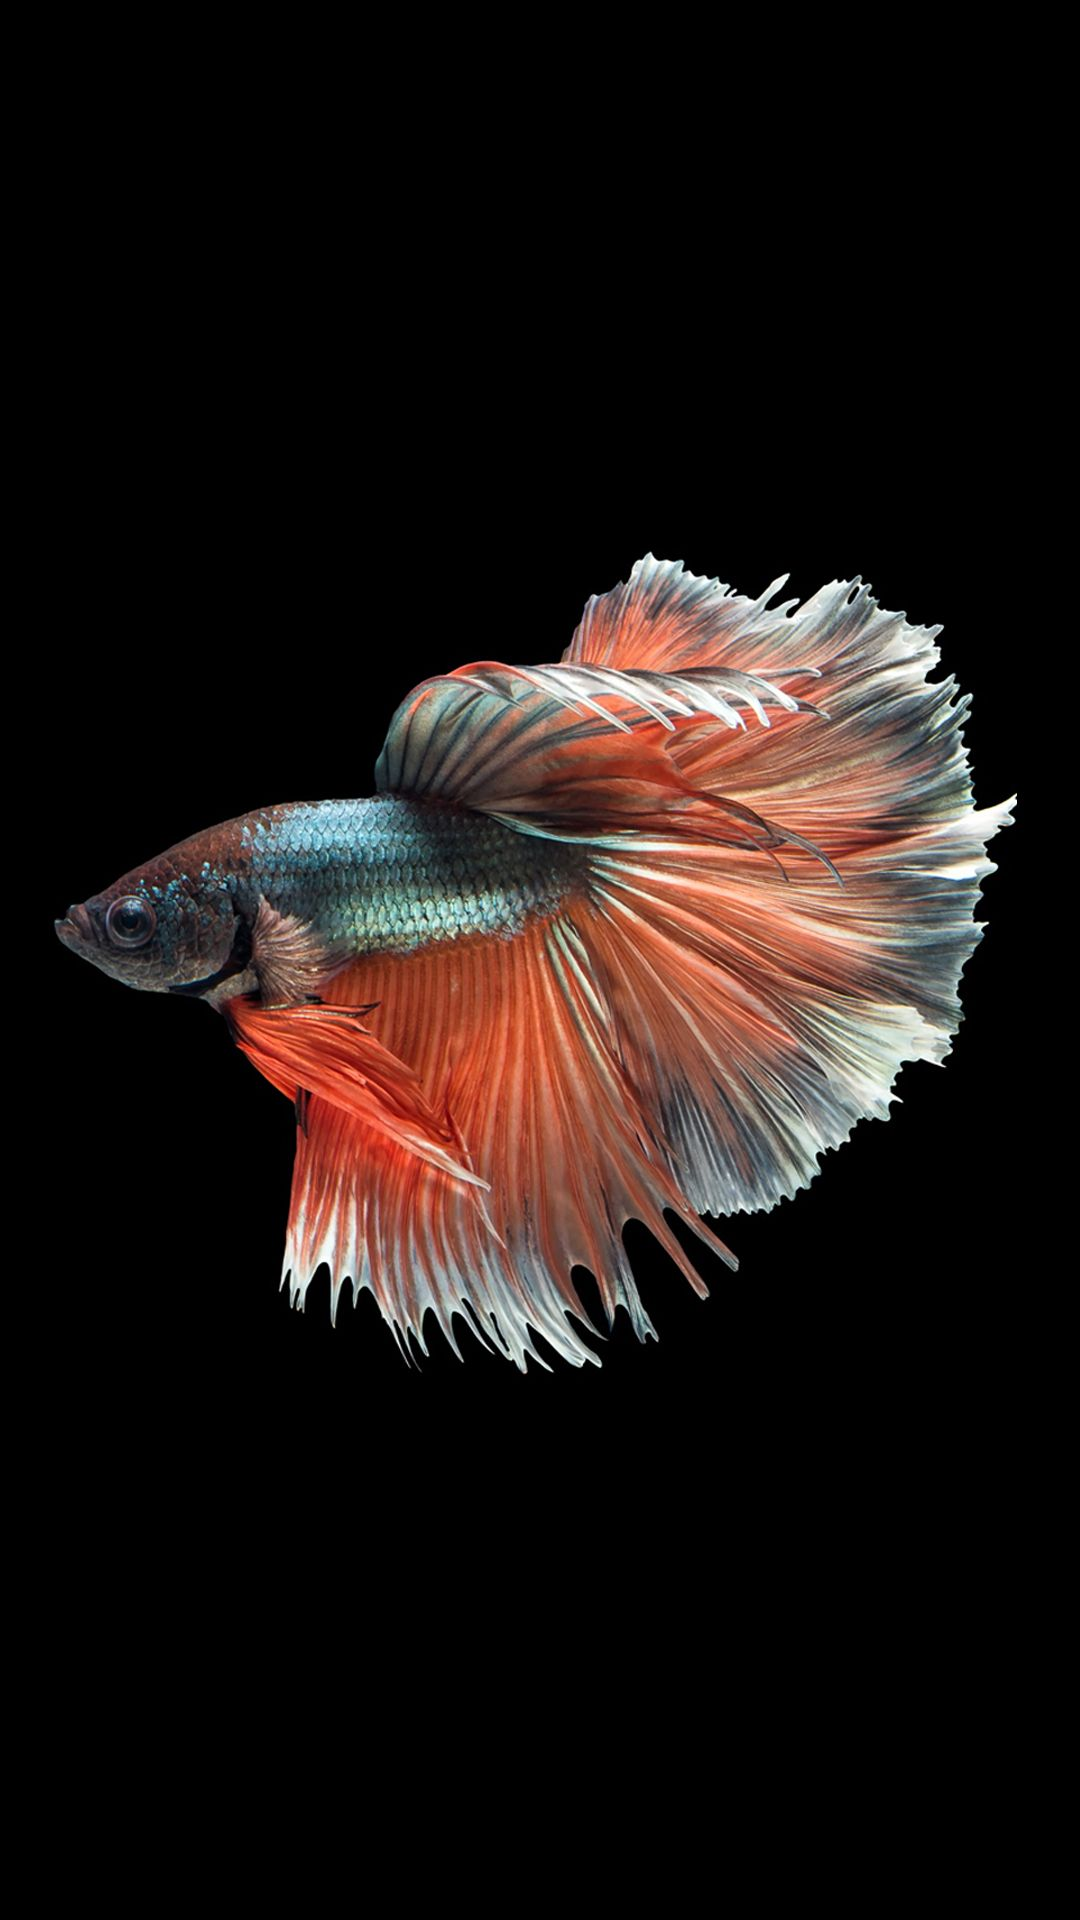 betta fish 14 betta fish betta fish fish siamese fighting fish